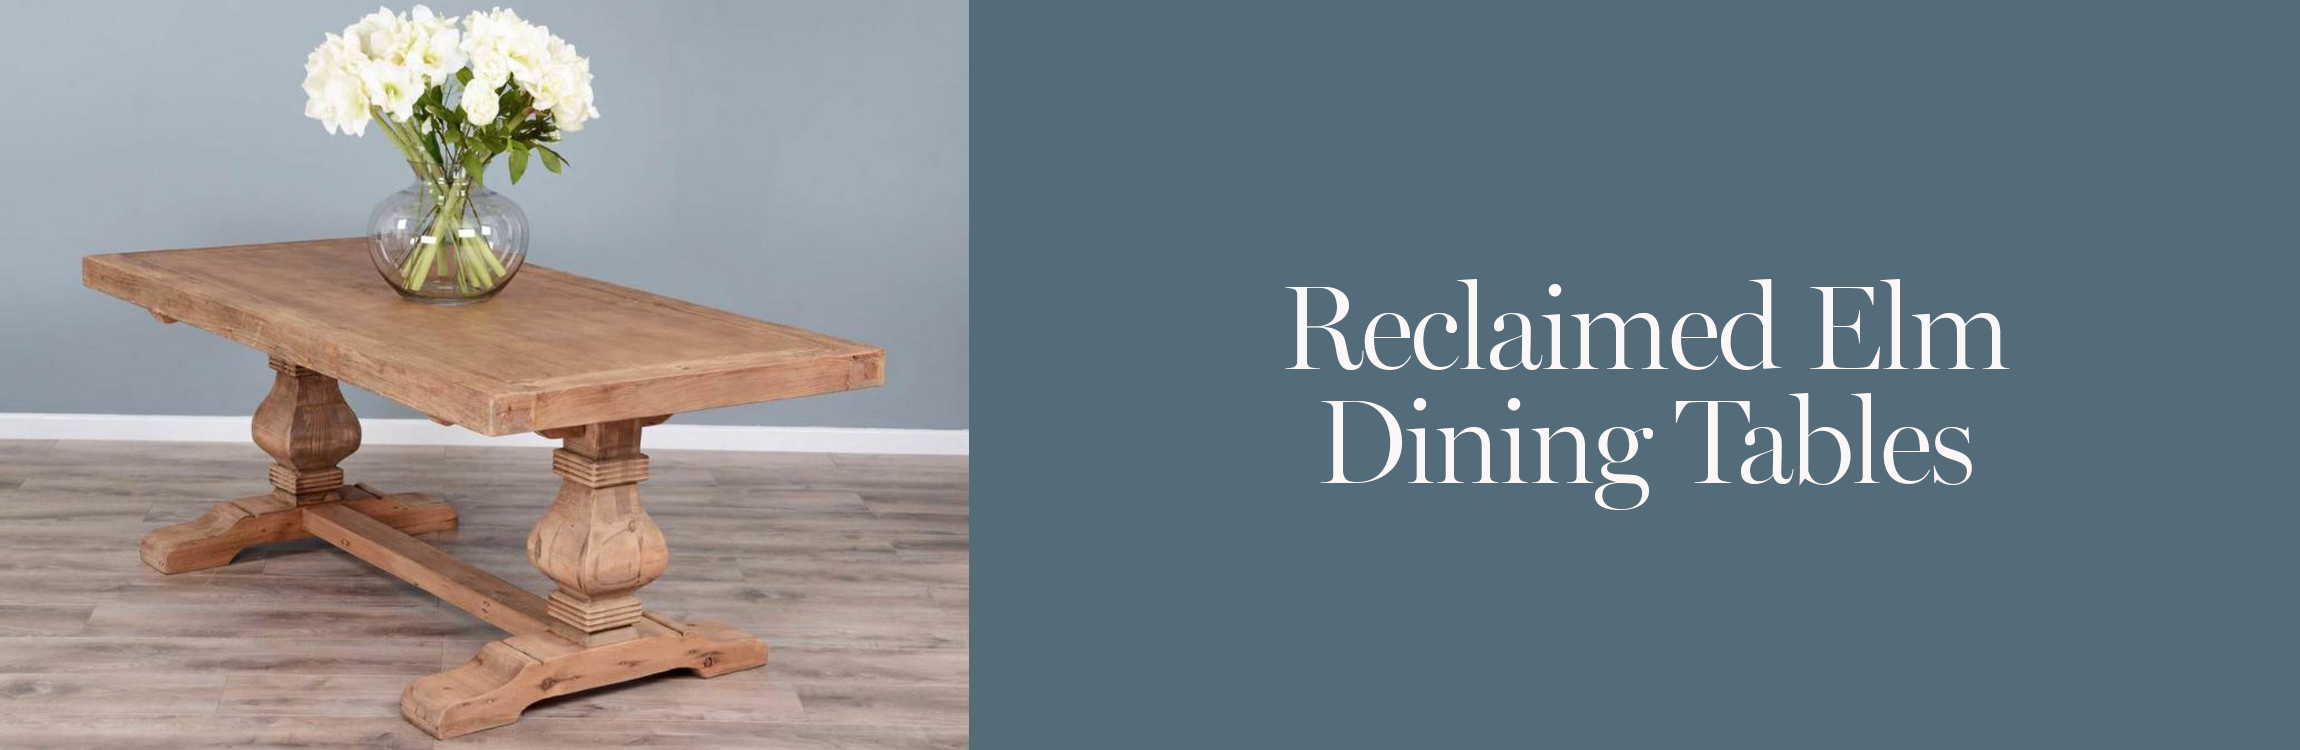 Reclaimed Elm Dining Tables